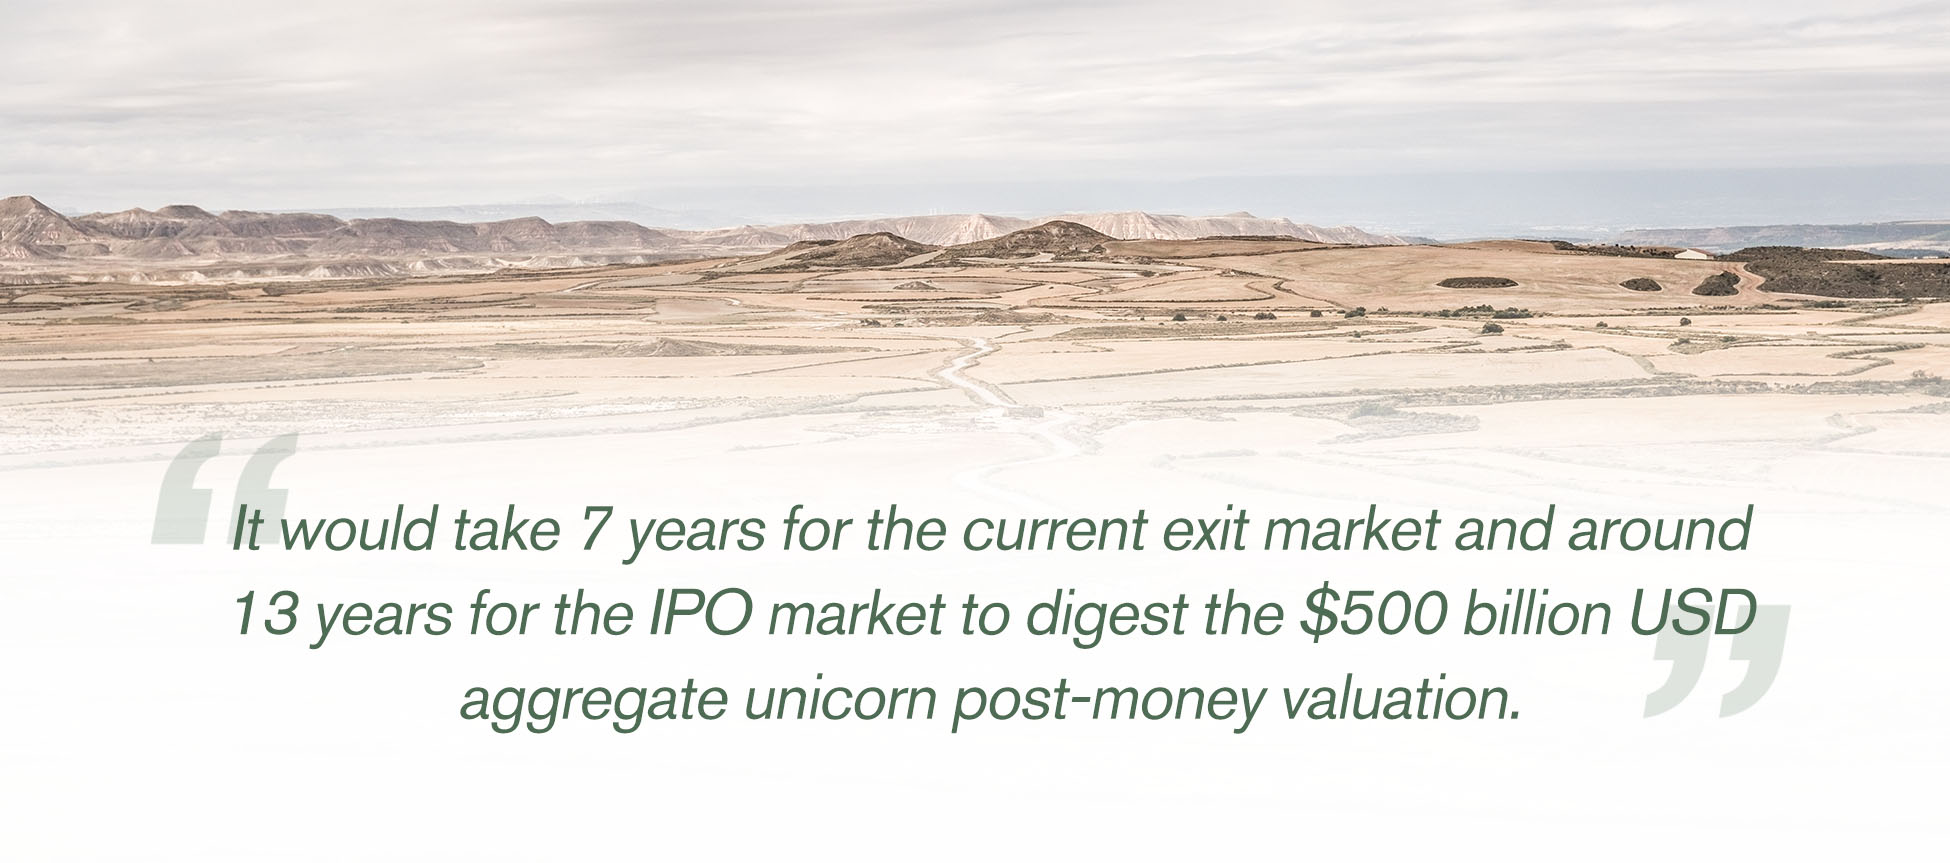 Ikove-Insights-The-VC-Unicorn-Obsession-Is-Creating-An-Early-Stage-Funding-Wasteland